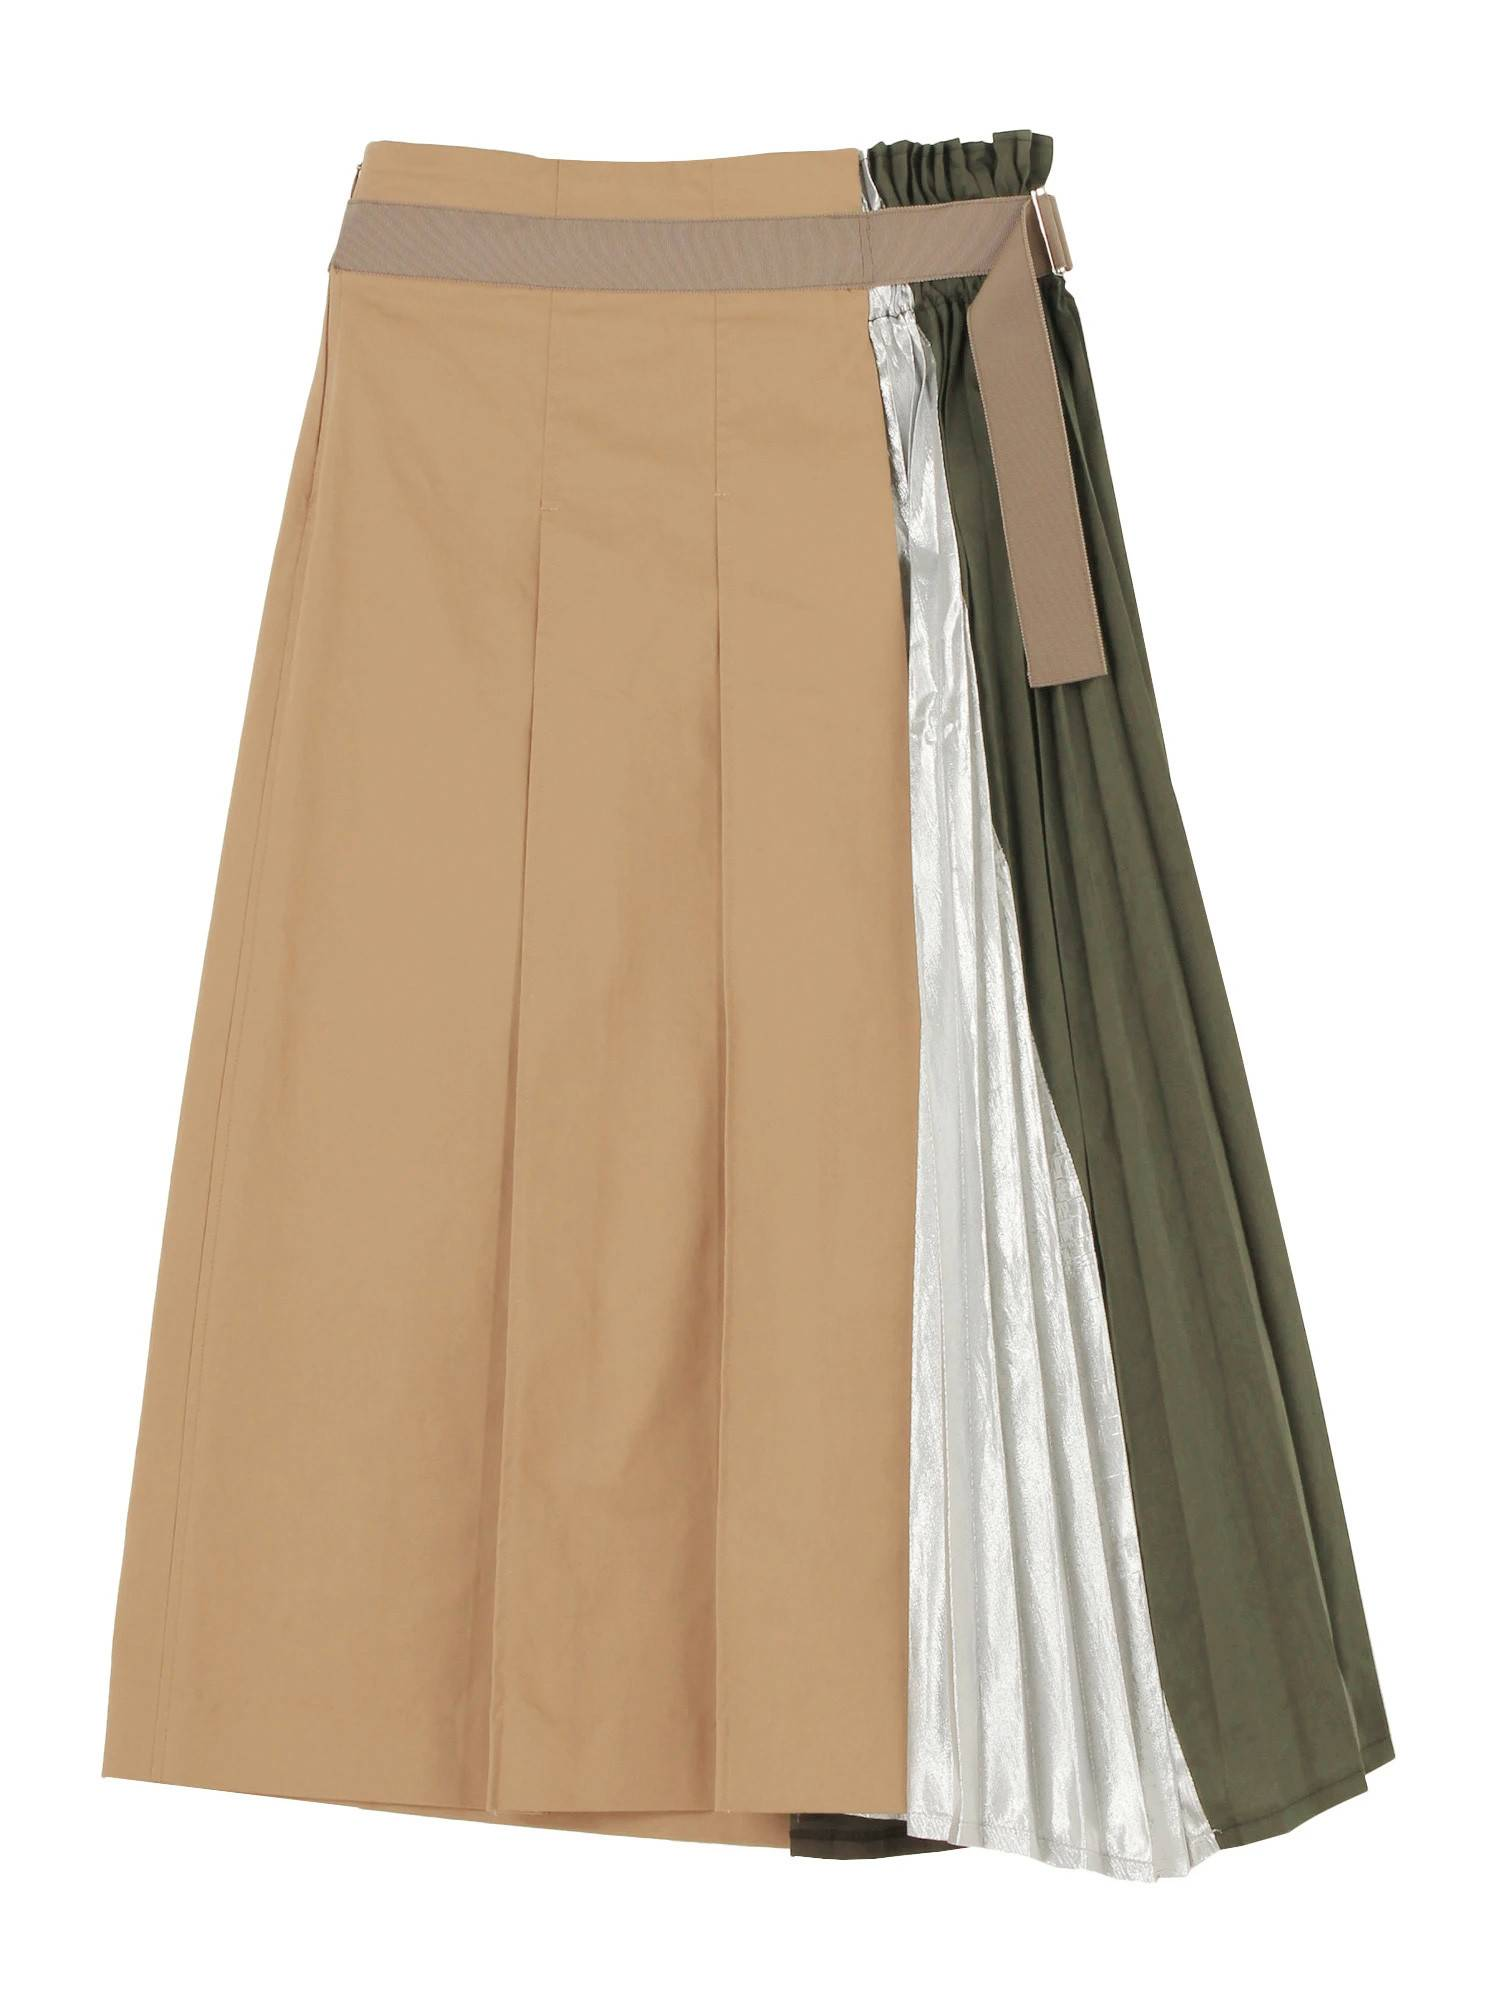 [WEB LIMITED ITEM] BLOKING PANEL PLEATS SK